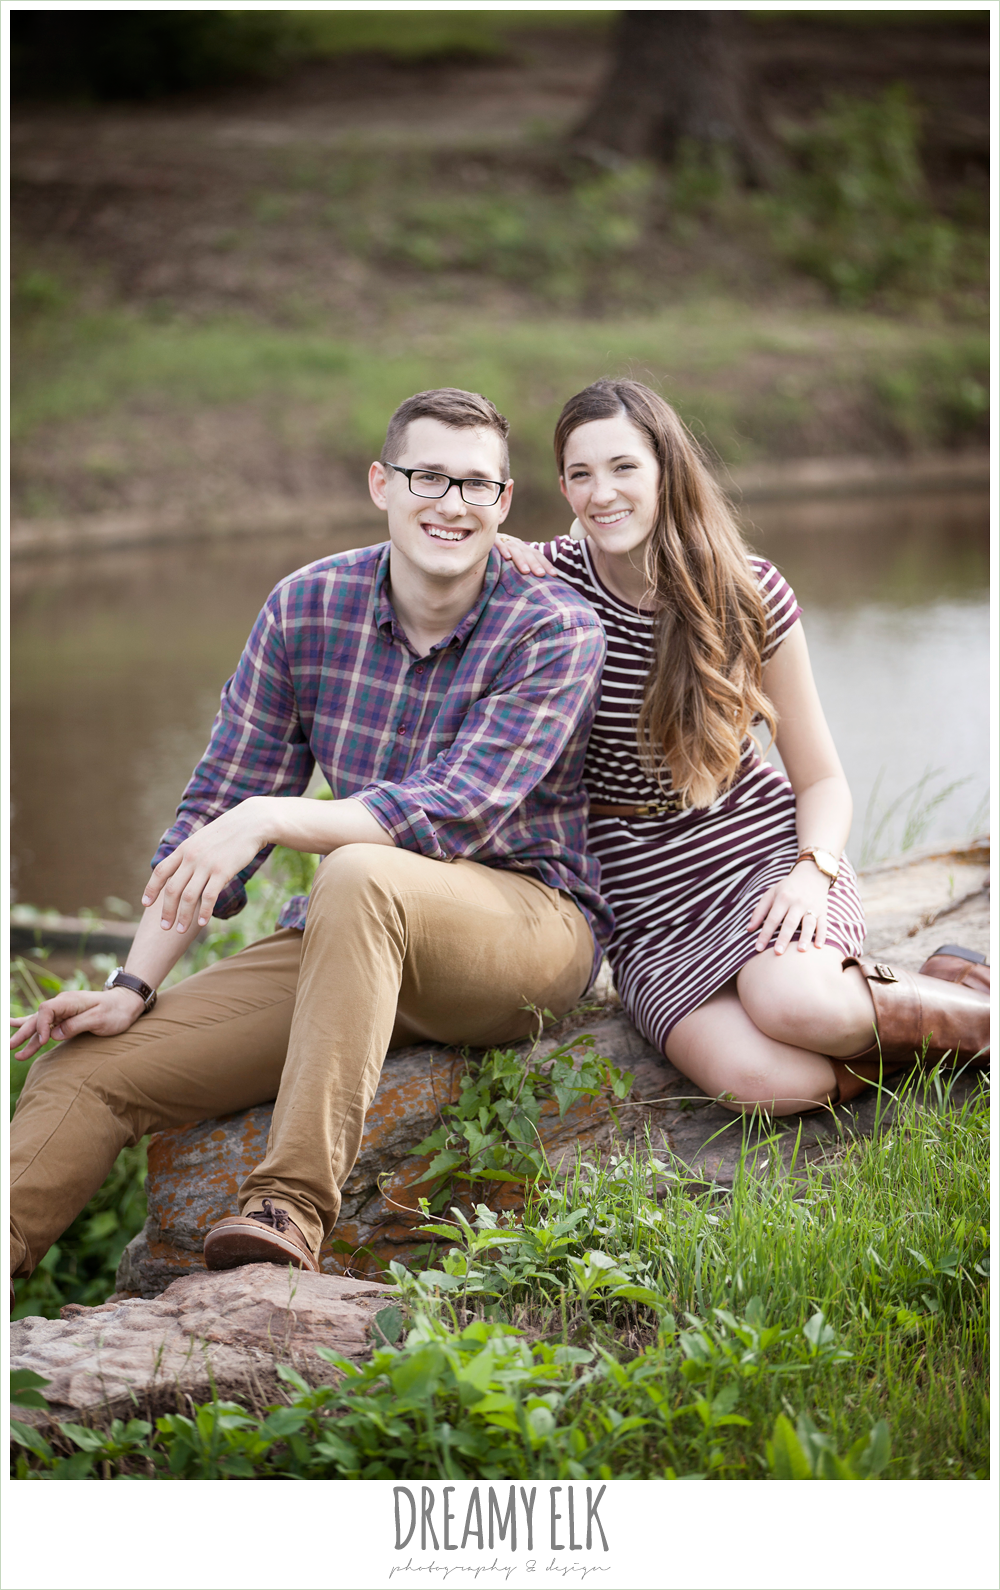 woodsy engagement photo, research park, college station, texas {dreamy elk photography and design}